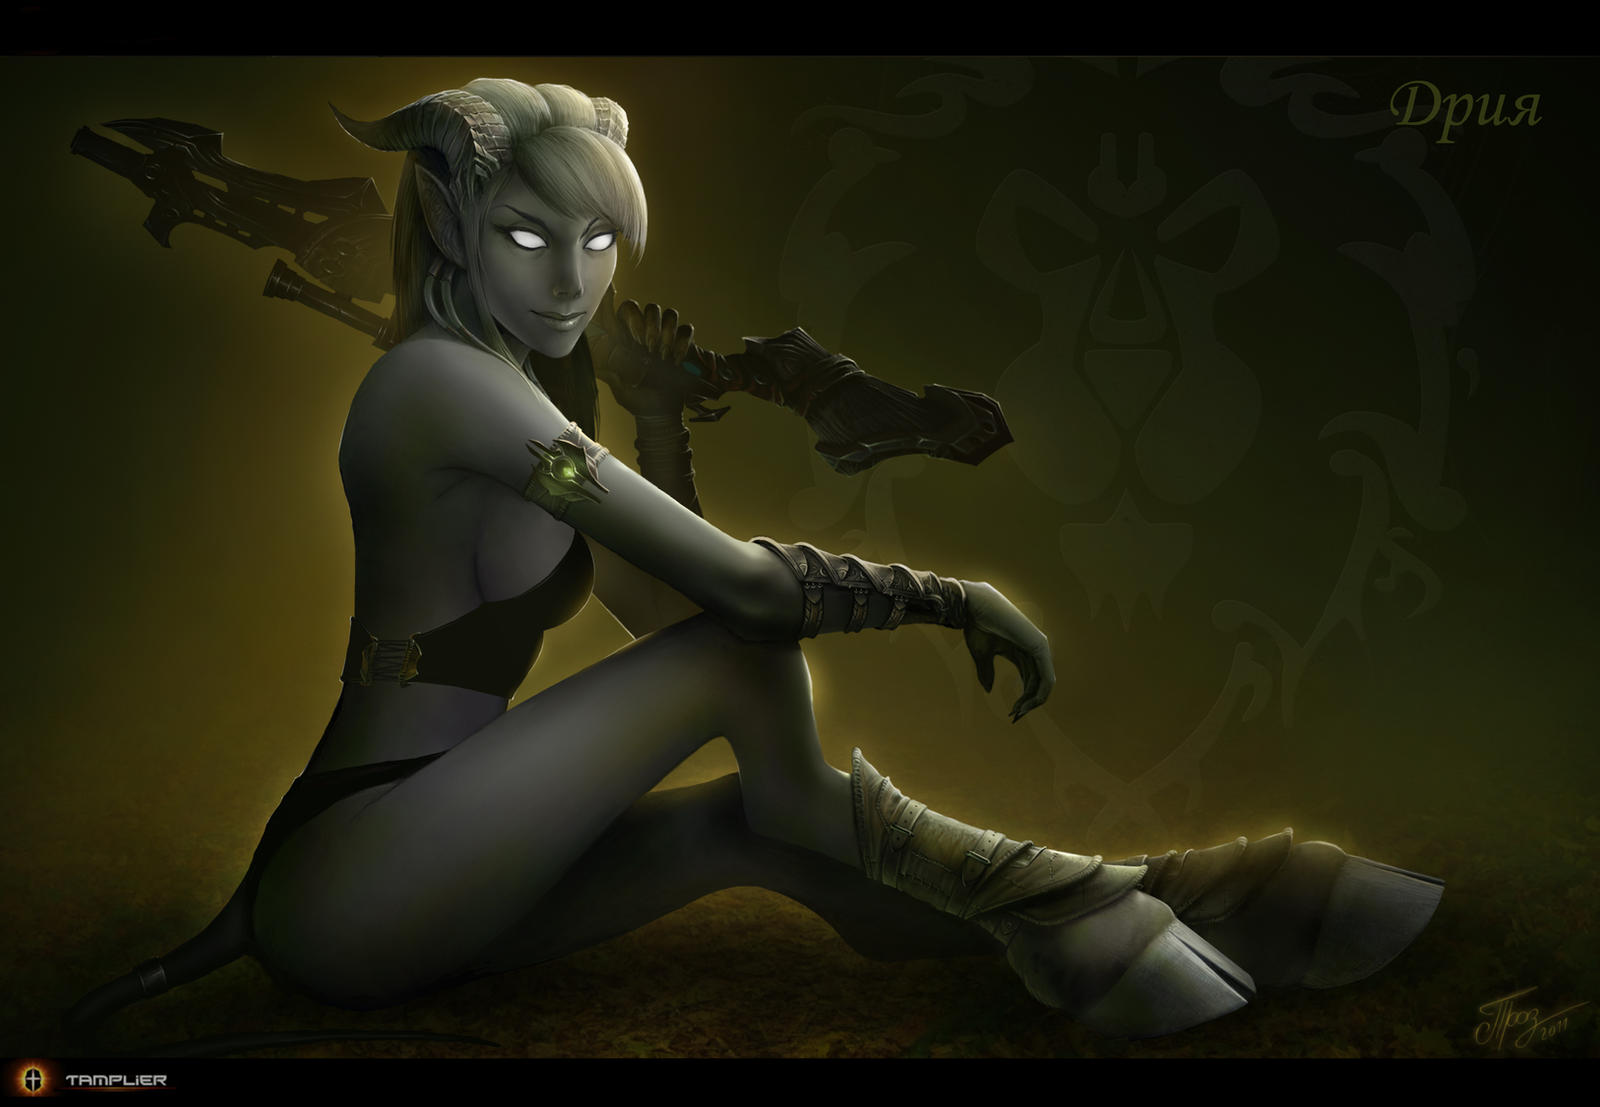 World of warcraft from draenei girls erotic image